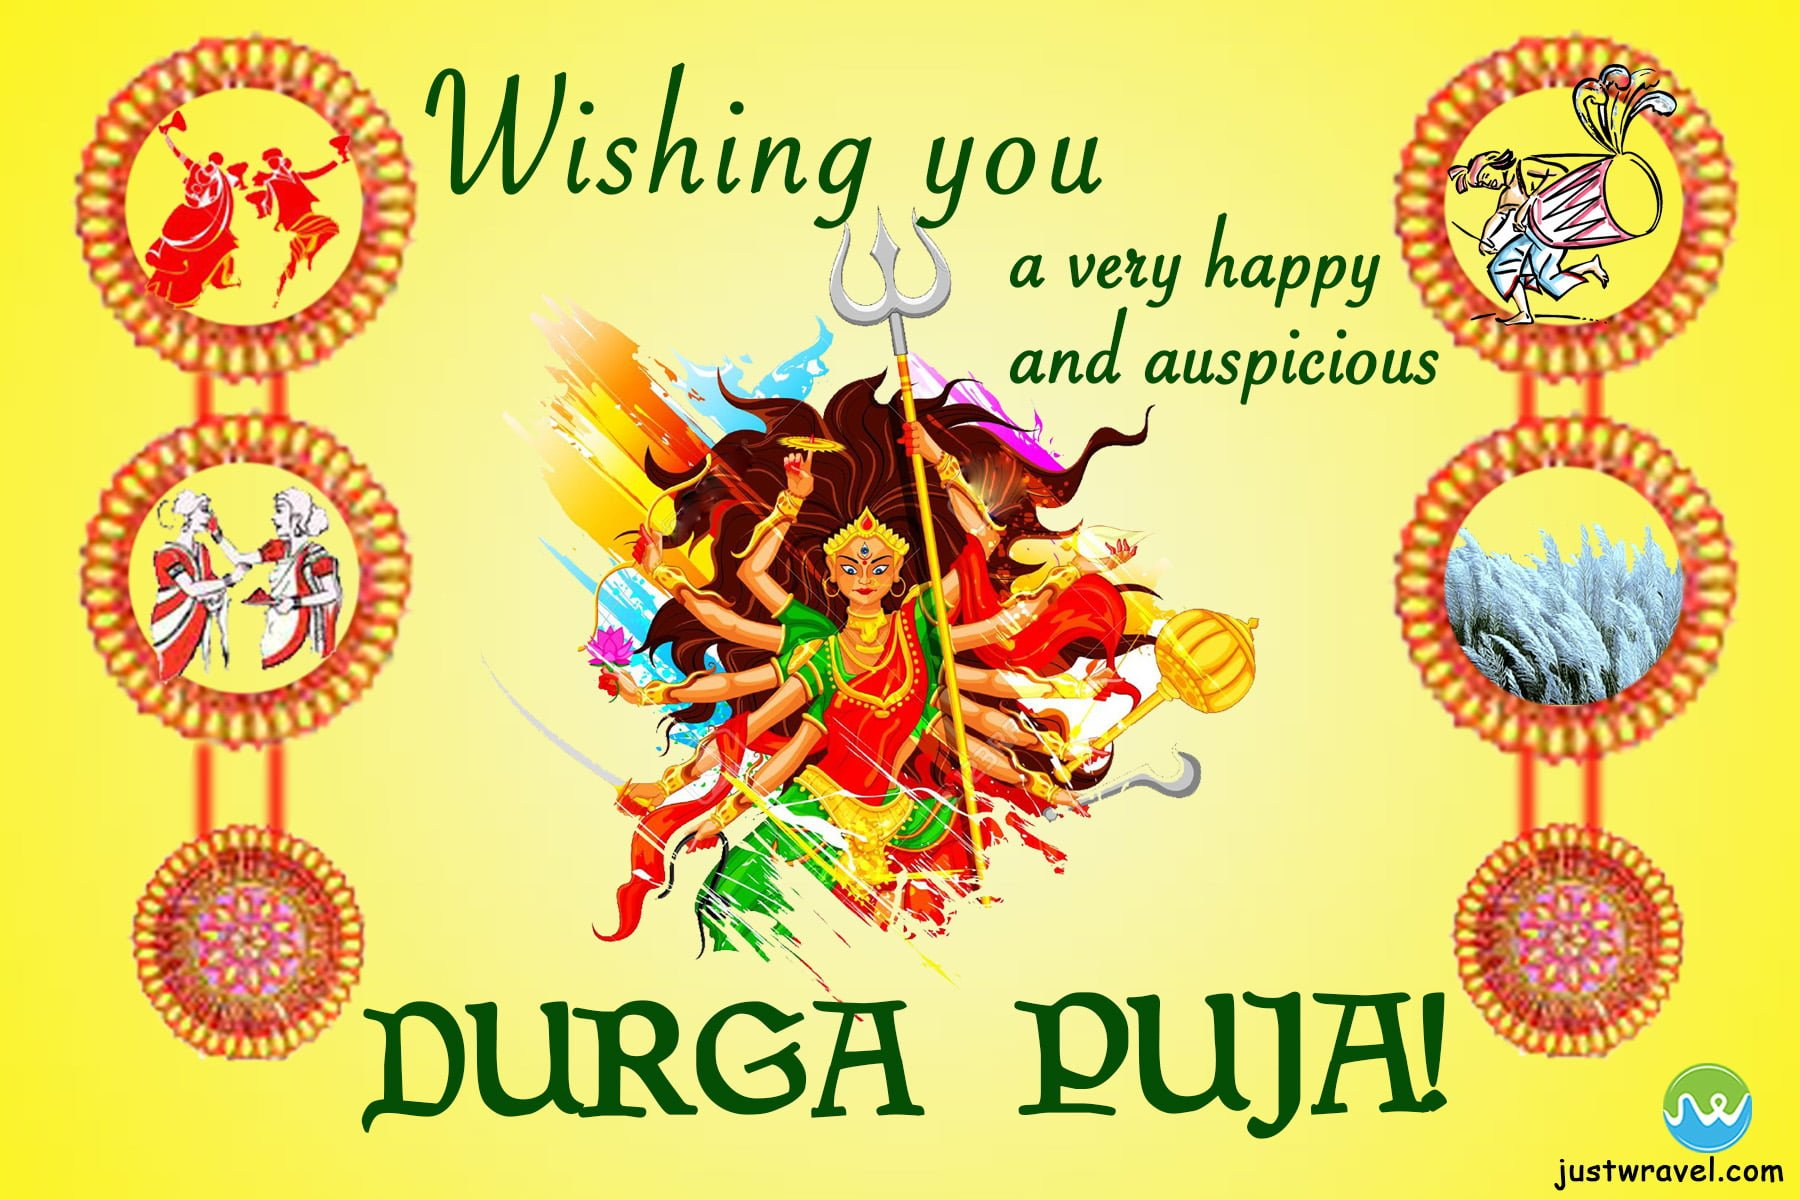 essay on durga puja Share this on whatsappdurga puja: durga puja is an auspicious hindu festival celebrating the victory of goddess durga over the demon mahisasuran durga puja is.